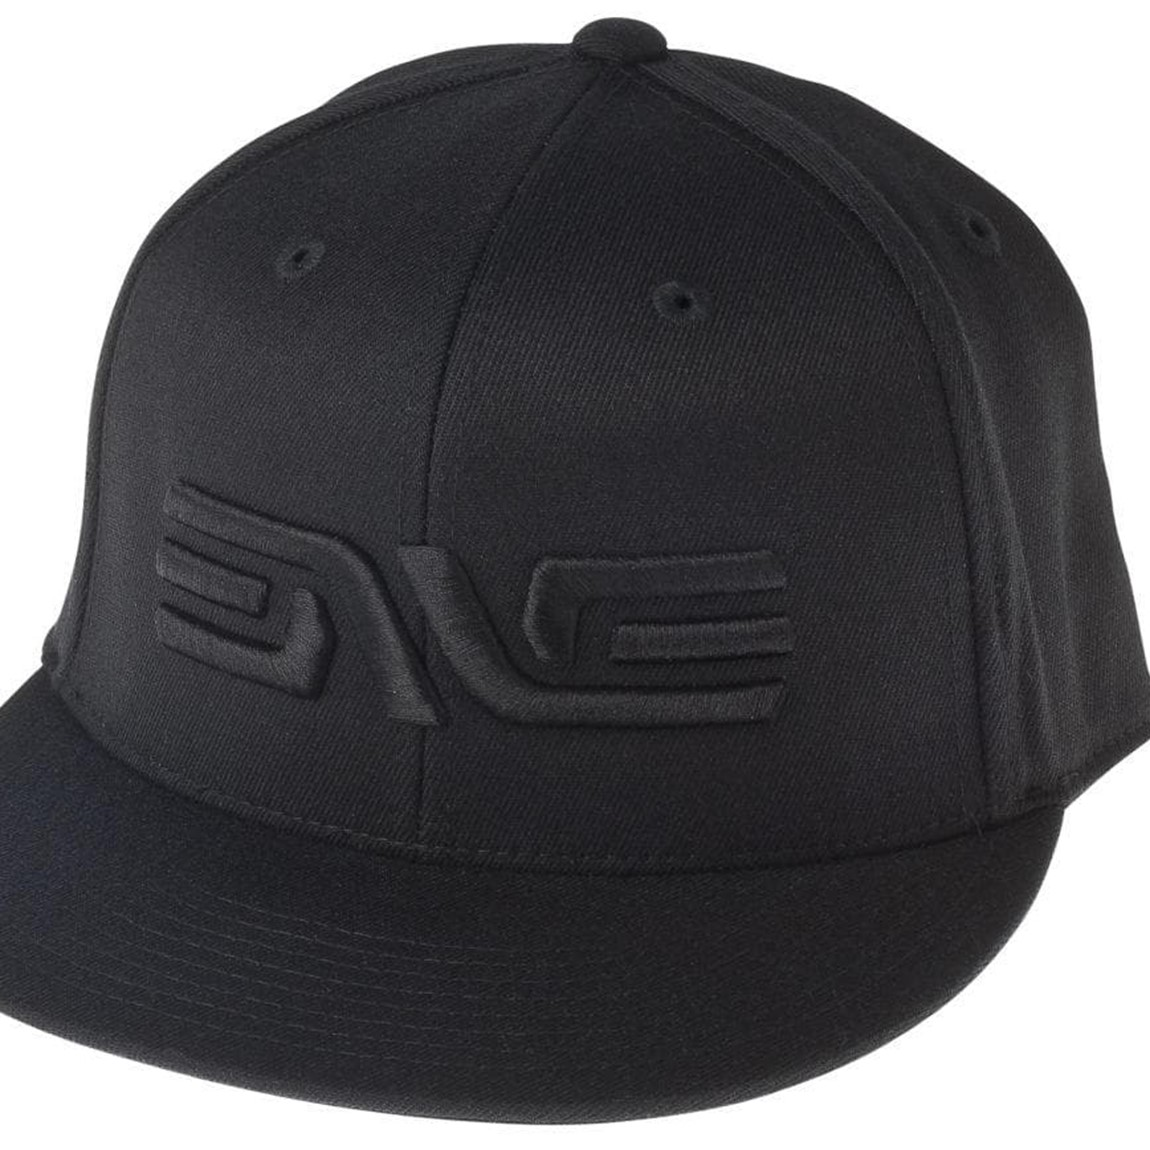 FITTED LOGO HAT